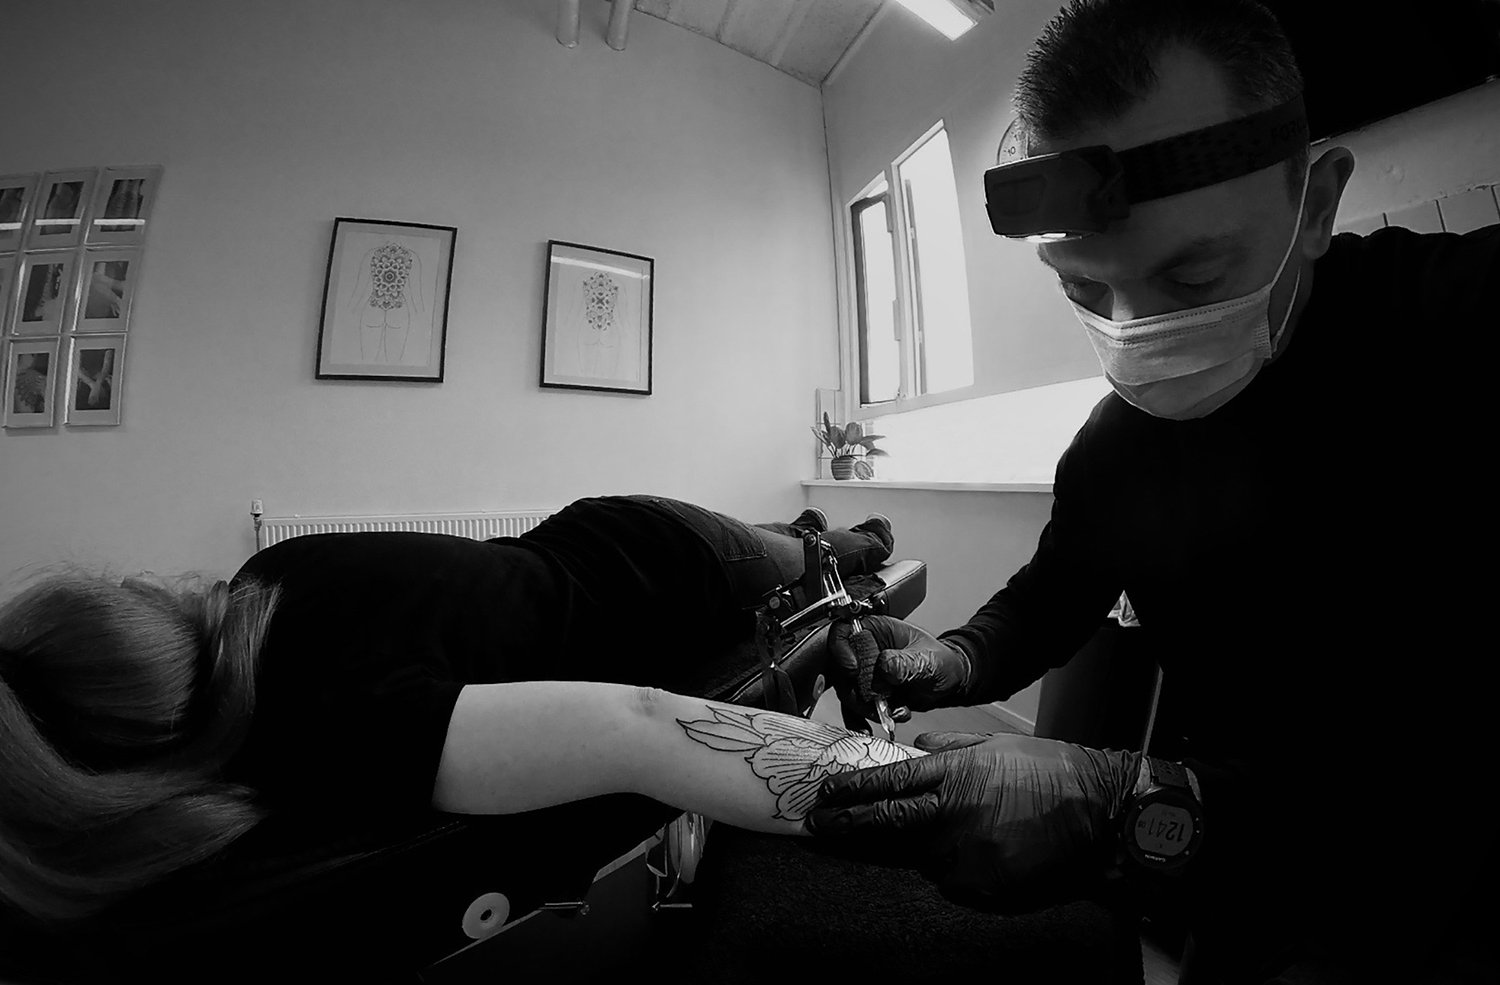 Tattoo Artist Paradox in private tattoo studio in the netherlands